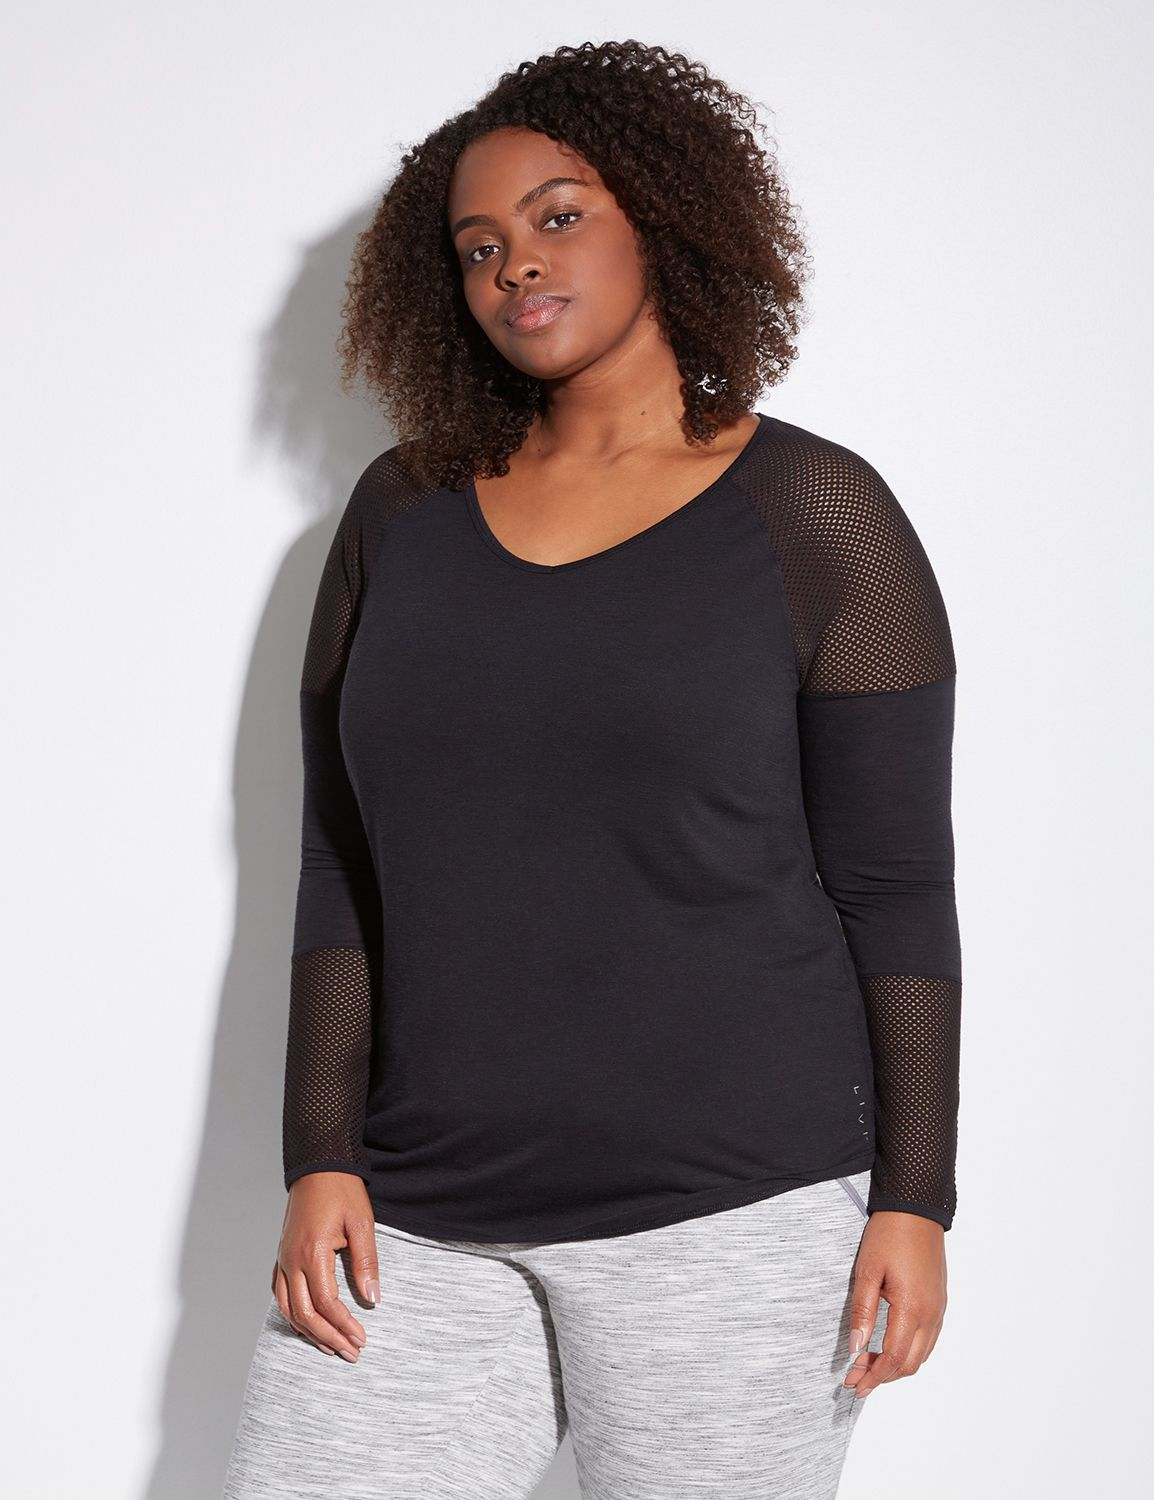 Lane Bryant Womens Active Tee With Mesh 14/16 Black